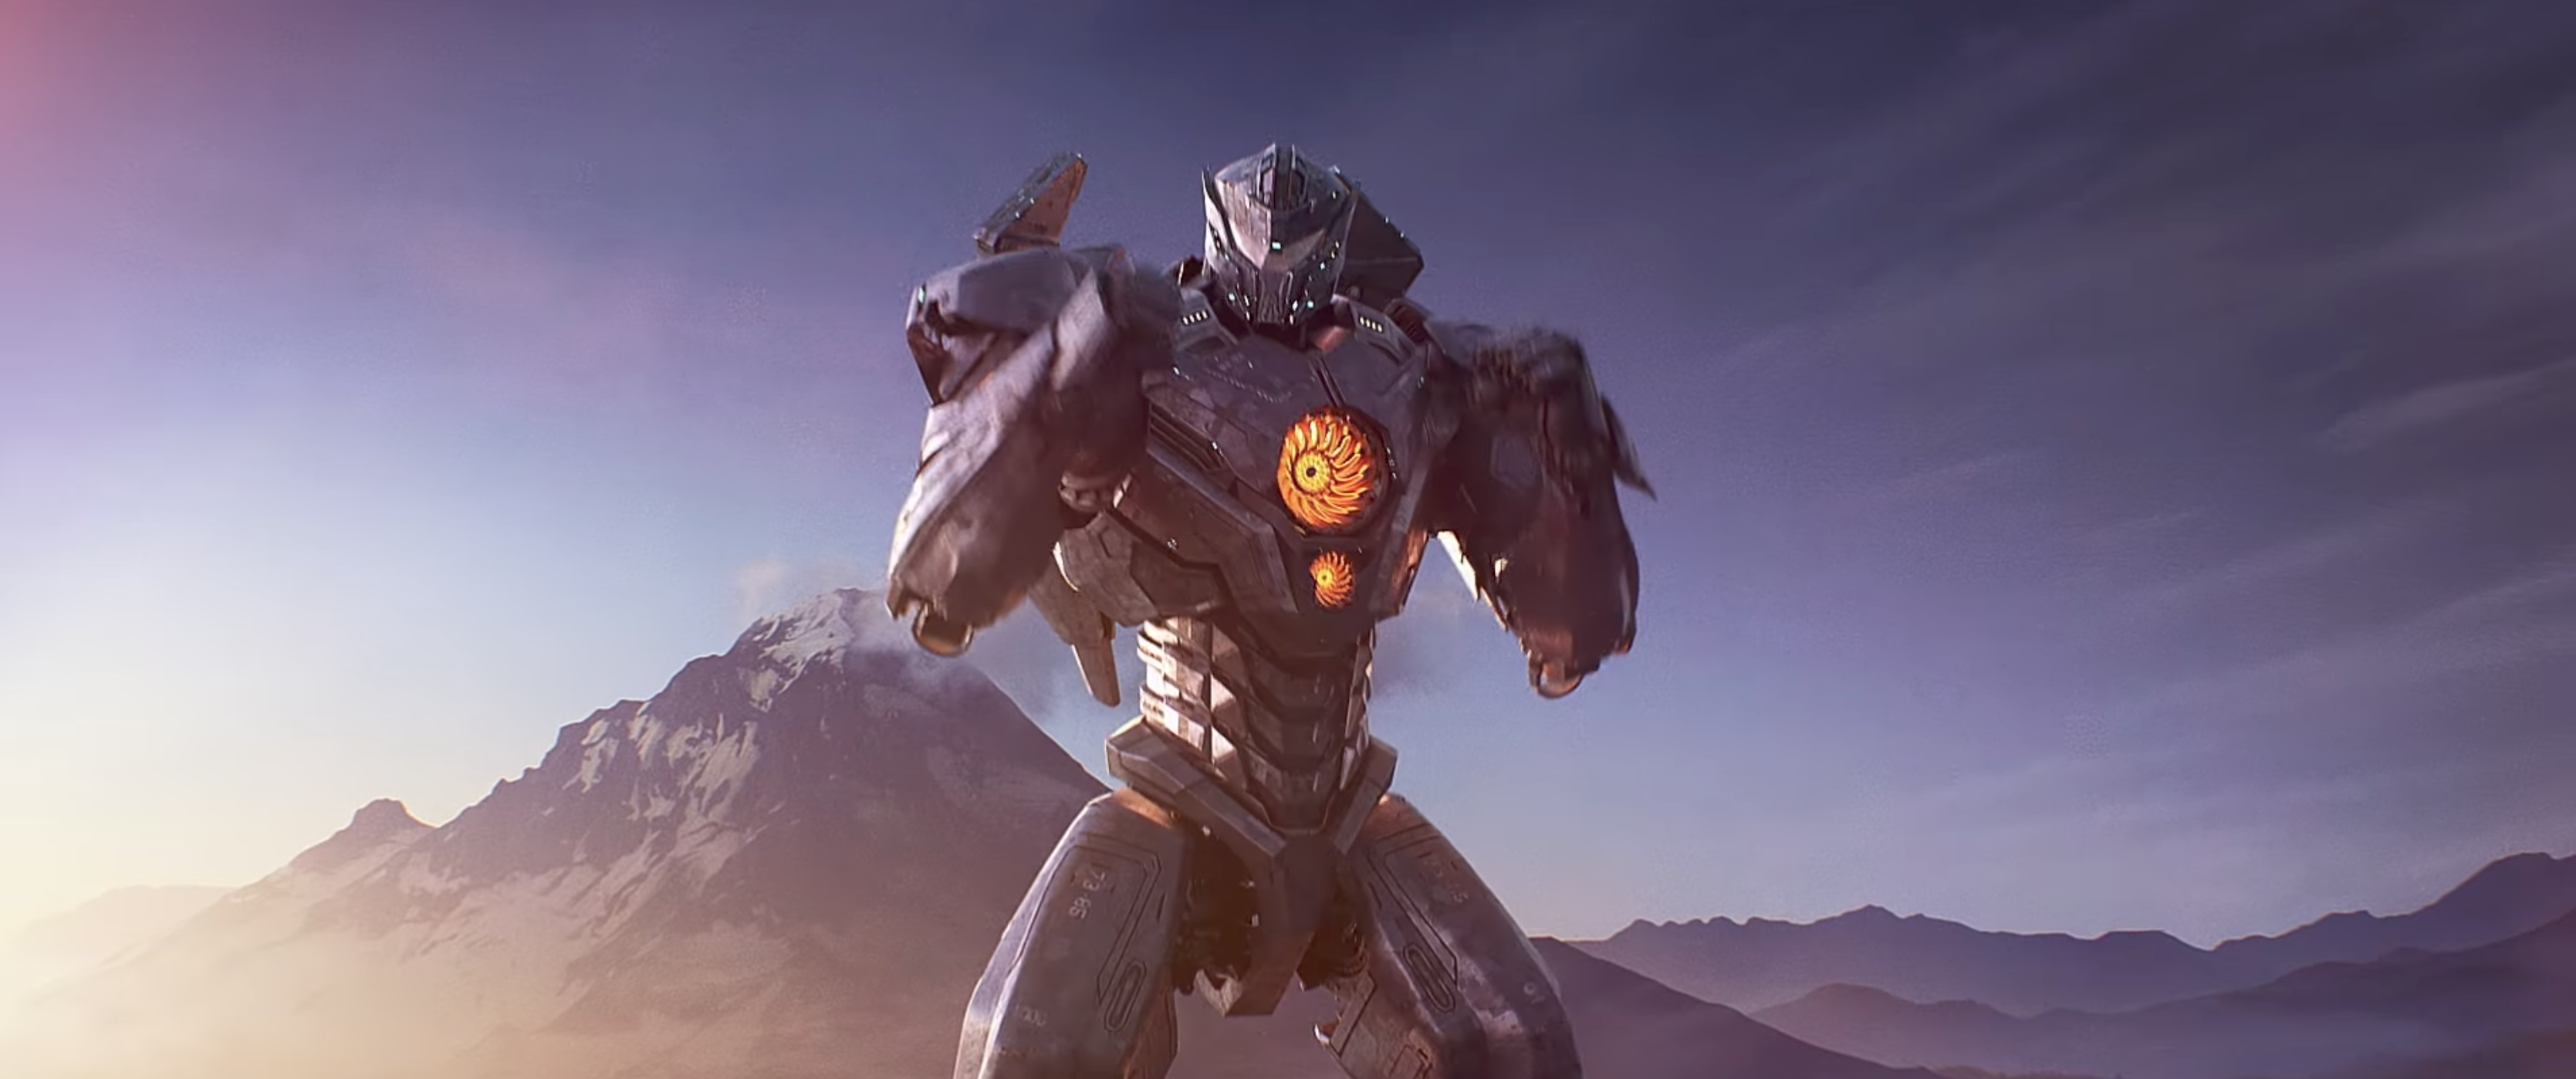 Pacific Rim Uprising's teaser features John Boyega and a ... Pacific Rim Blueprints